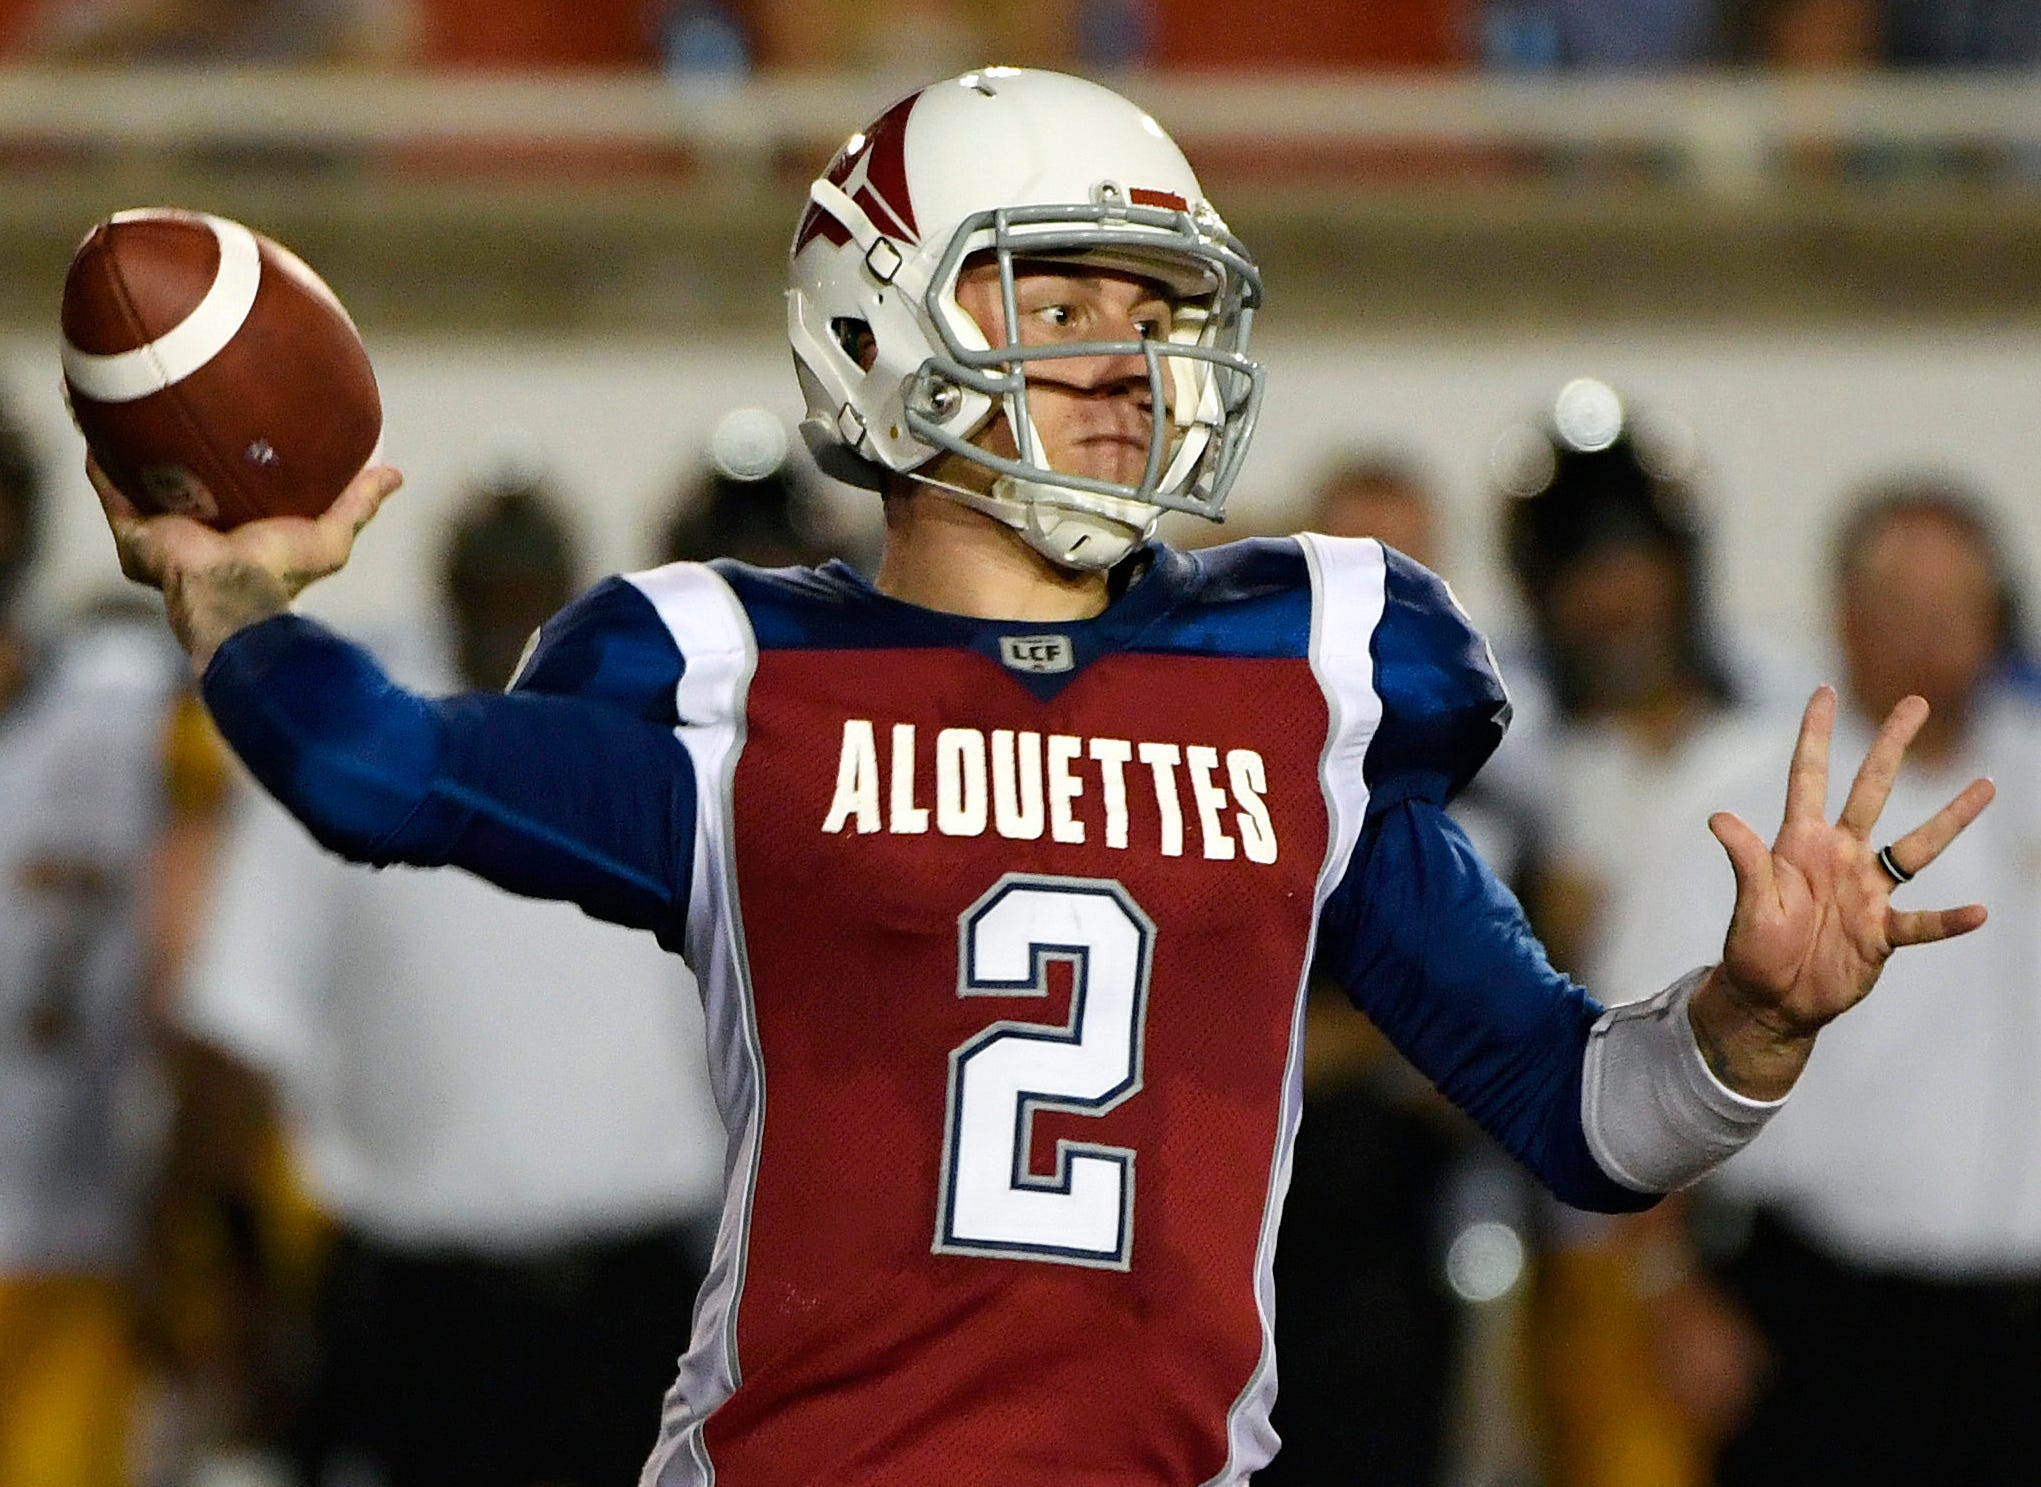 Johnny Manziel is running out of football leagues in which he can play.